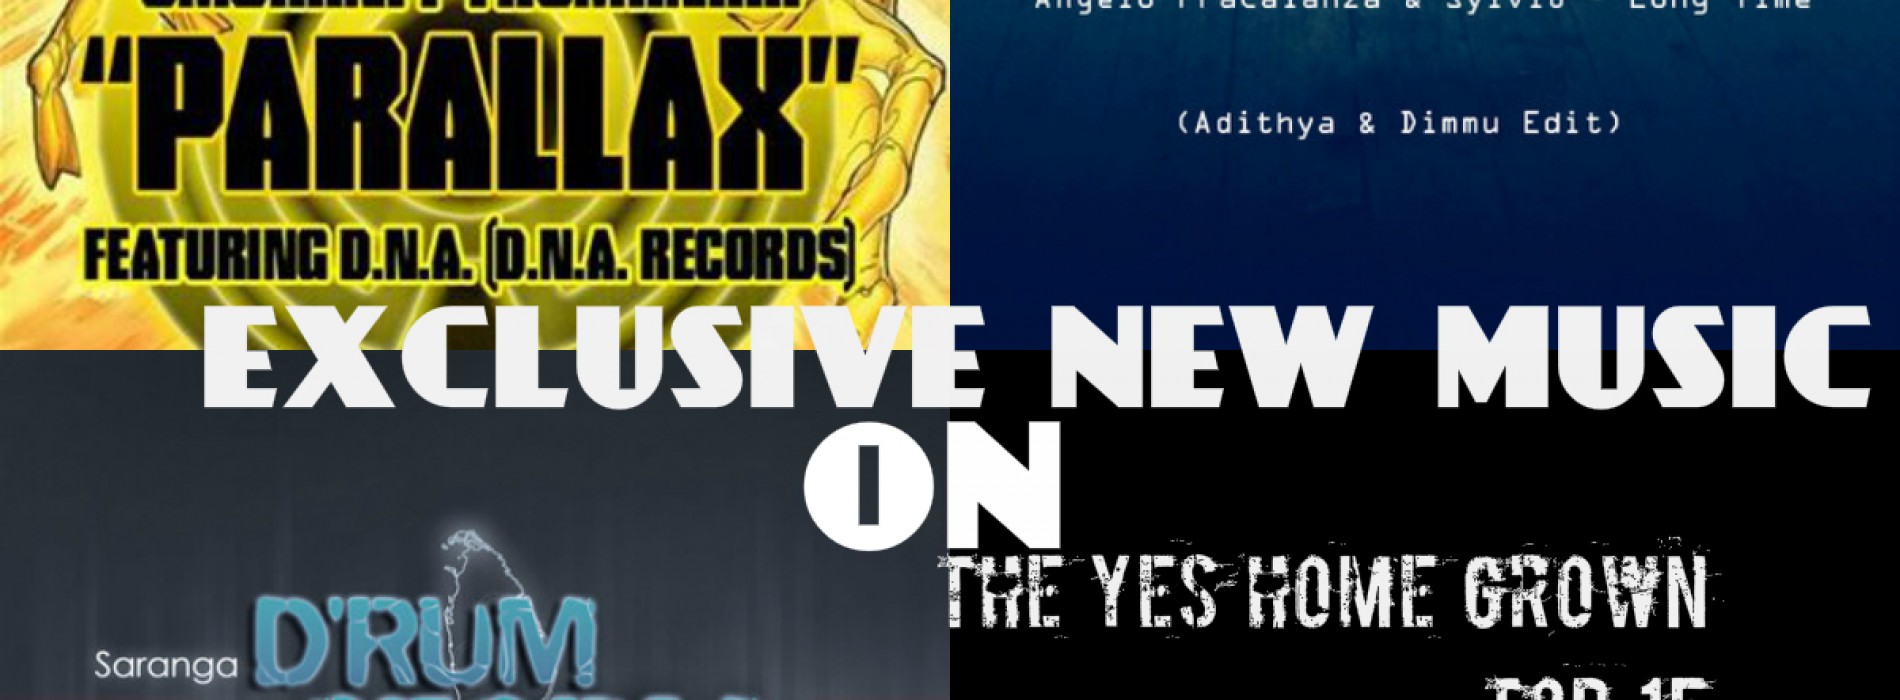 New Music On The YES Home Grown Top 15